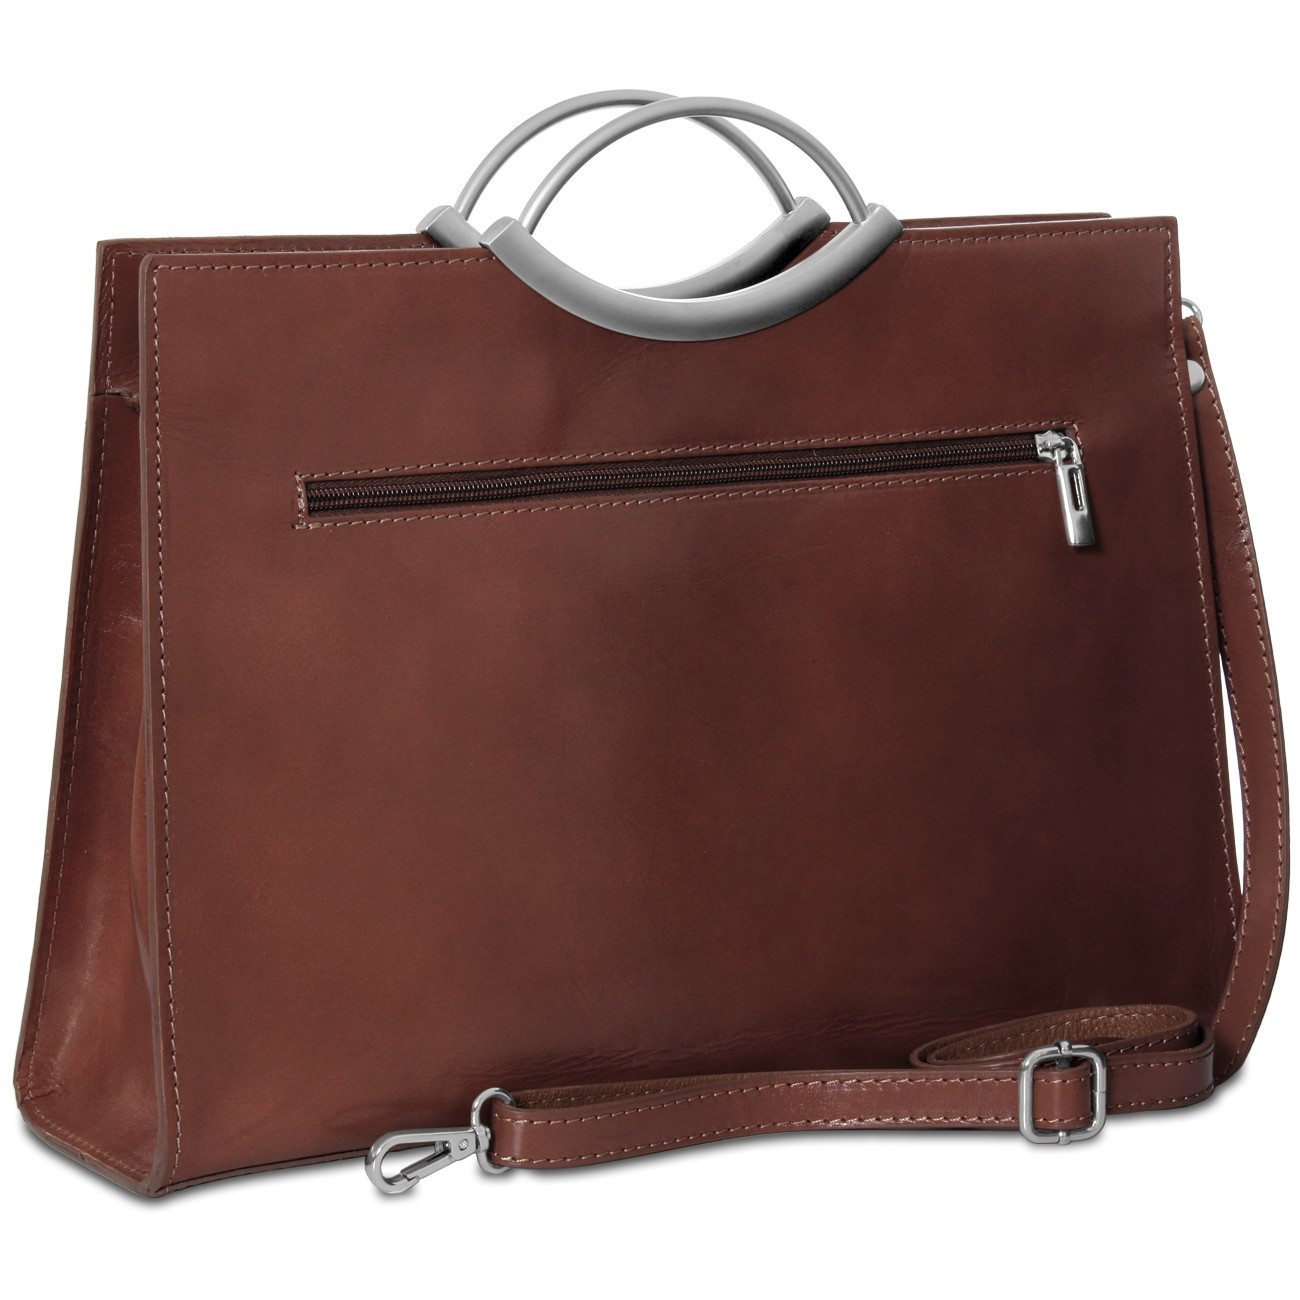 Perfect GenuineleathercowhidewomensbriefcasebusinessbagOLLady